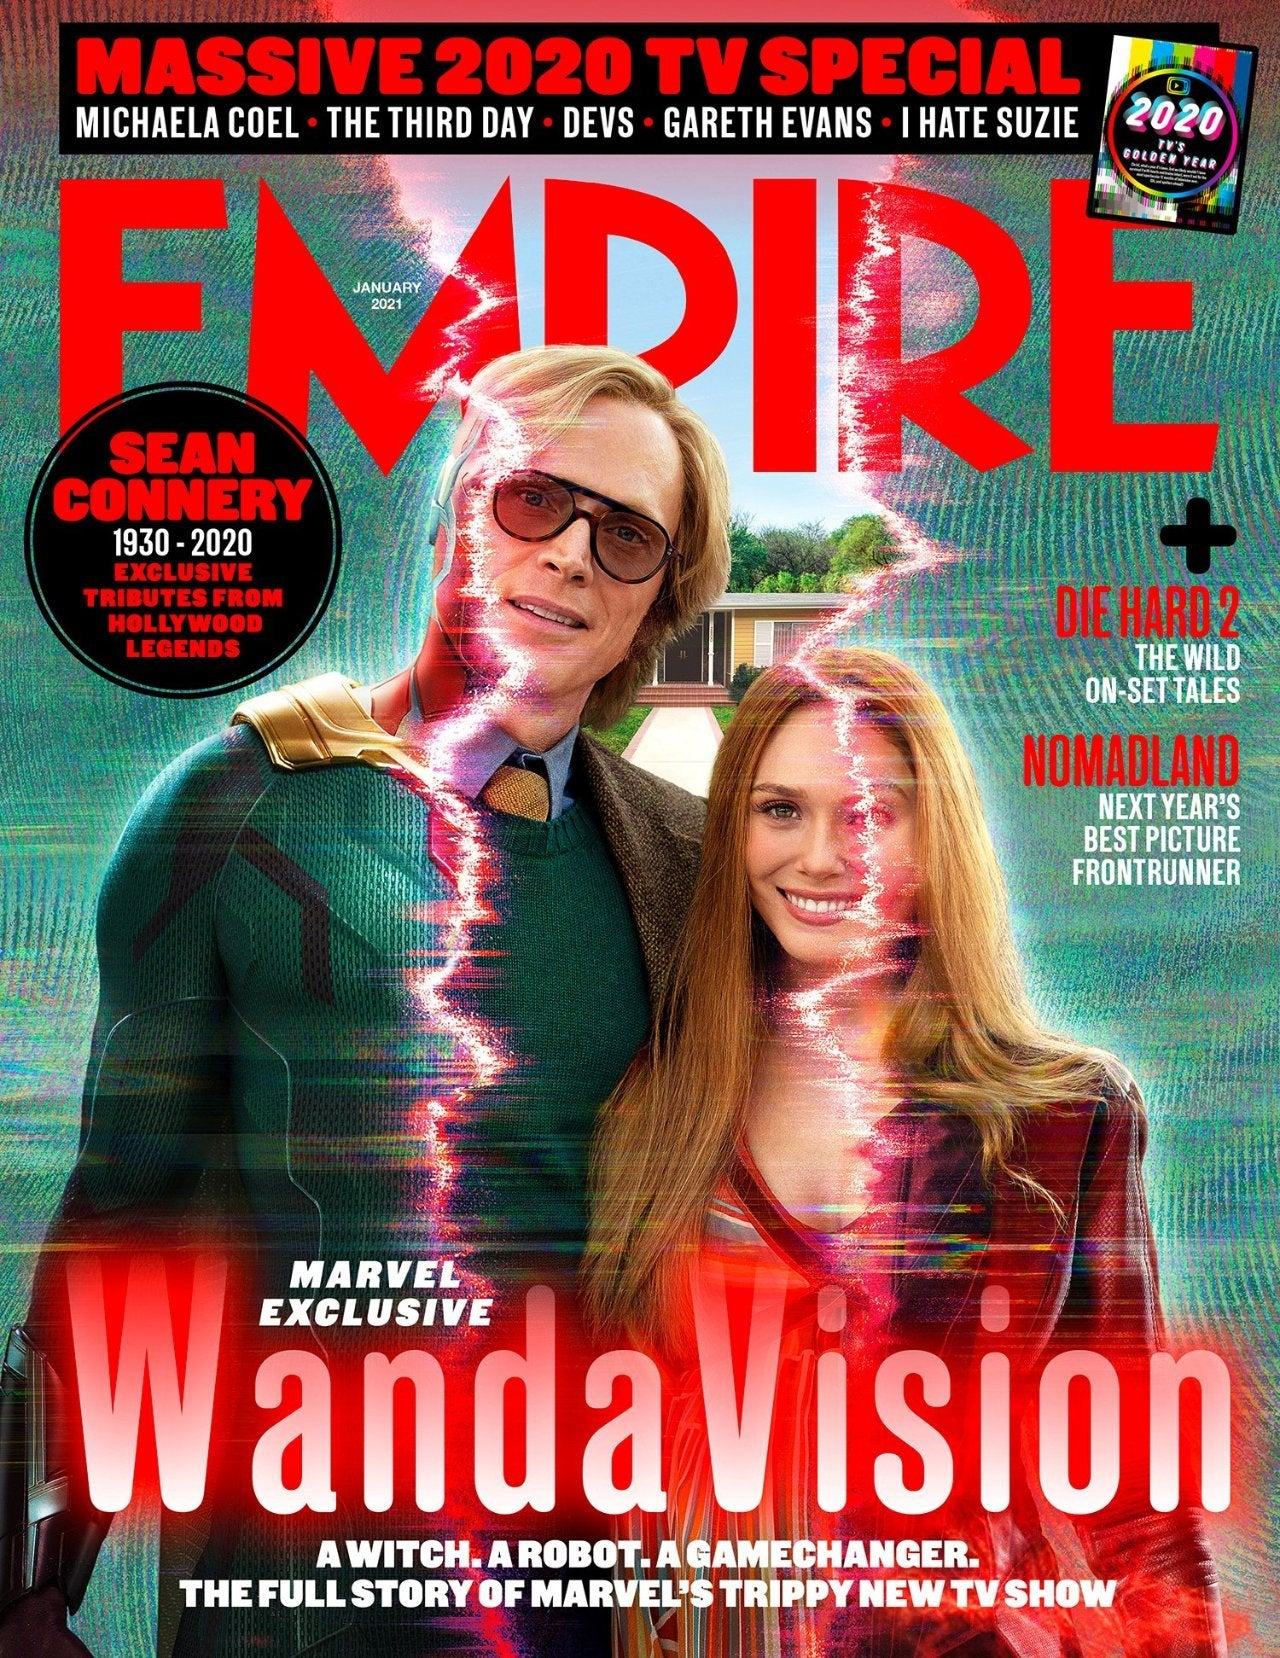 Empire Magazine WandaVision cover reveal